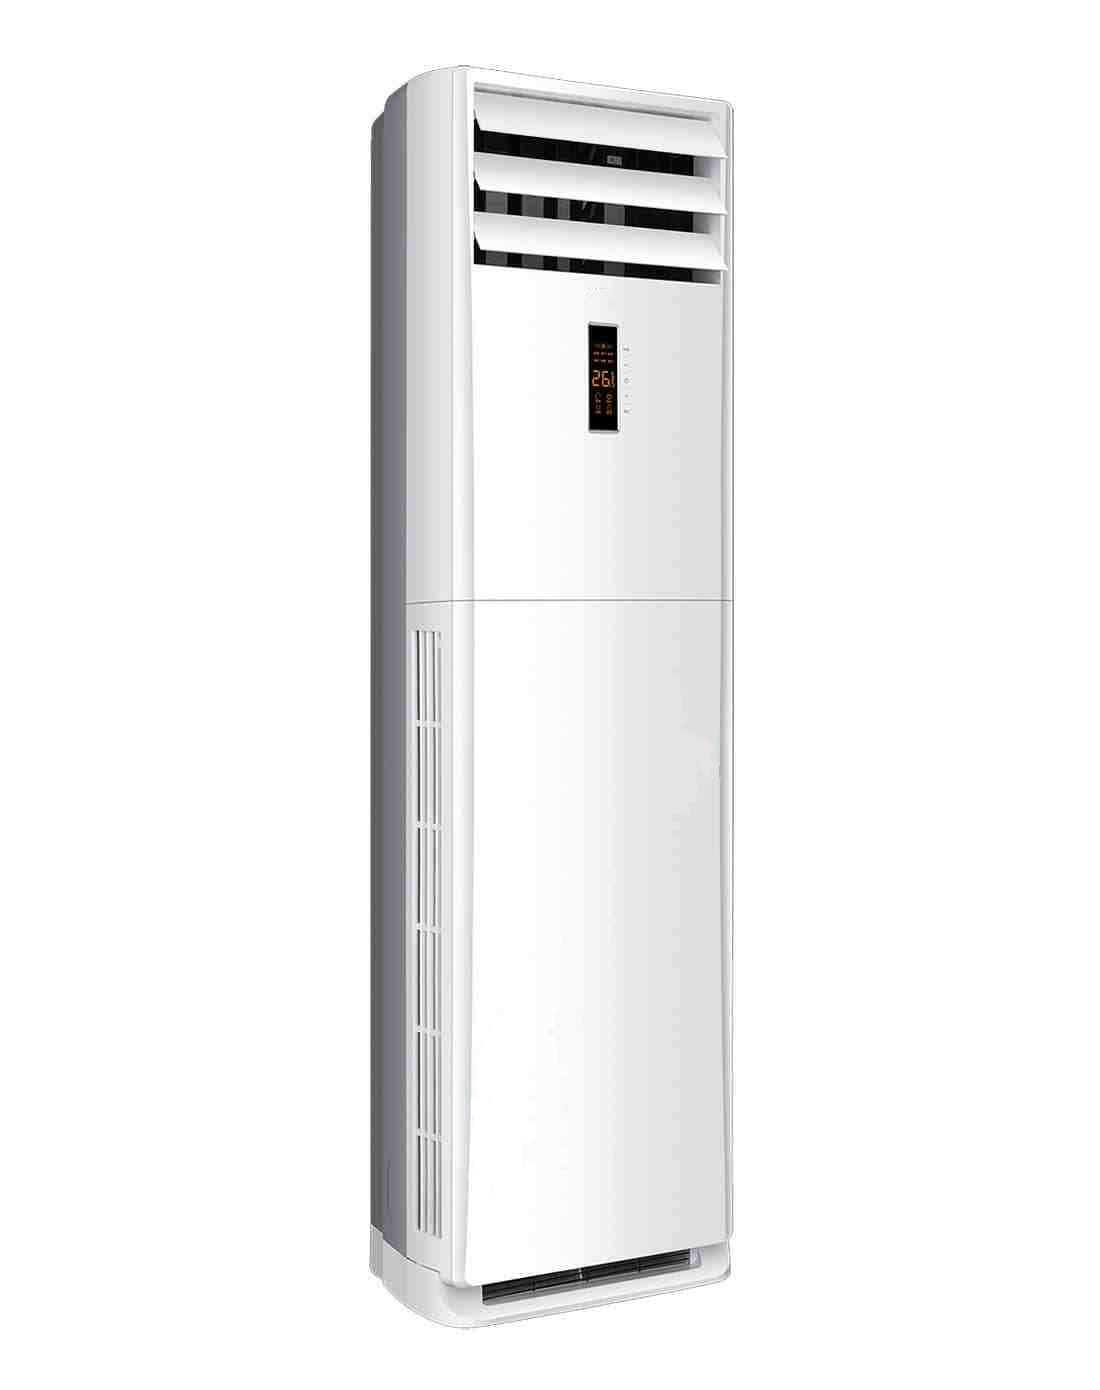 Floor Standing Split Air Conditioner Cooling and Heating 24000 BTU